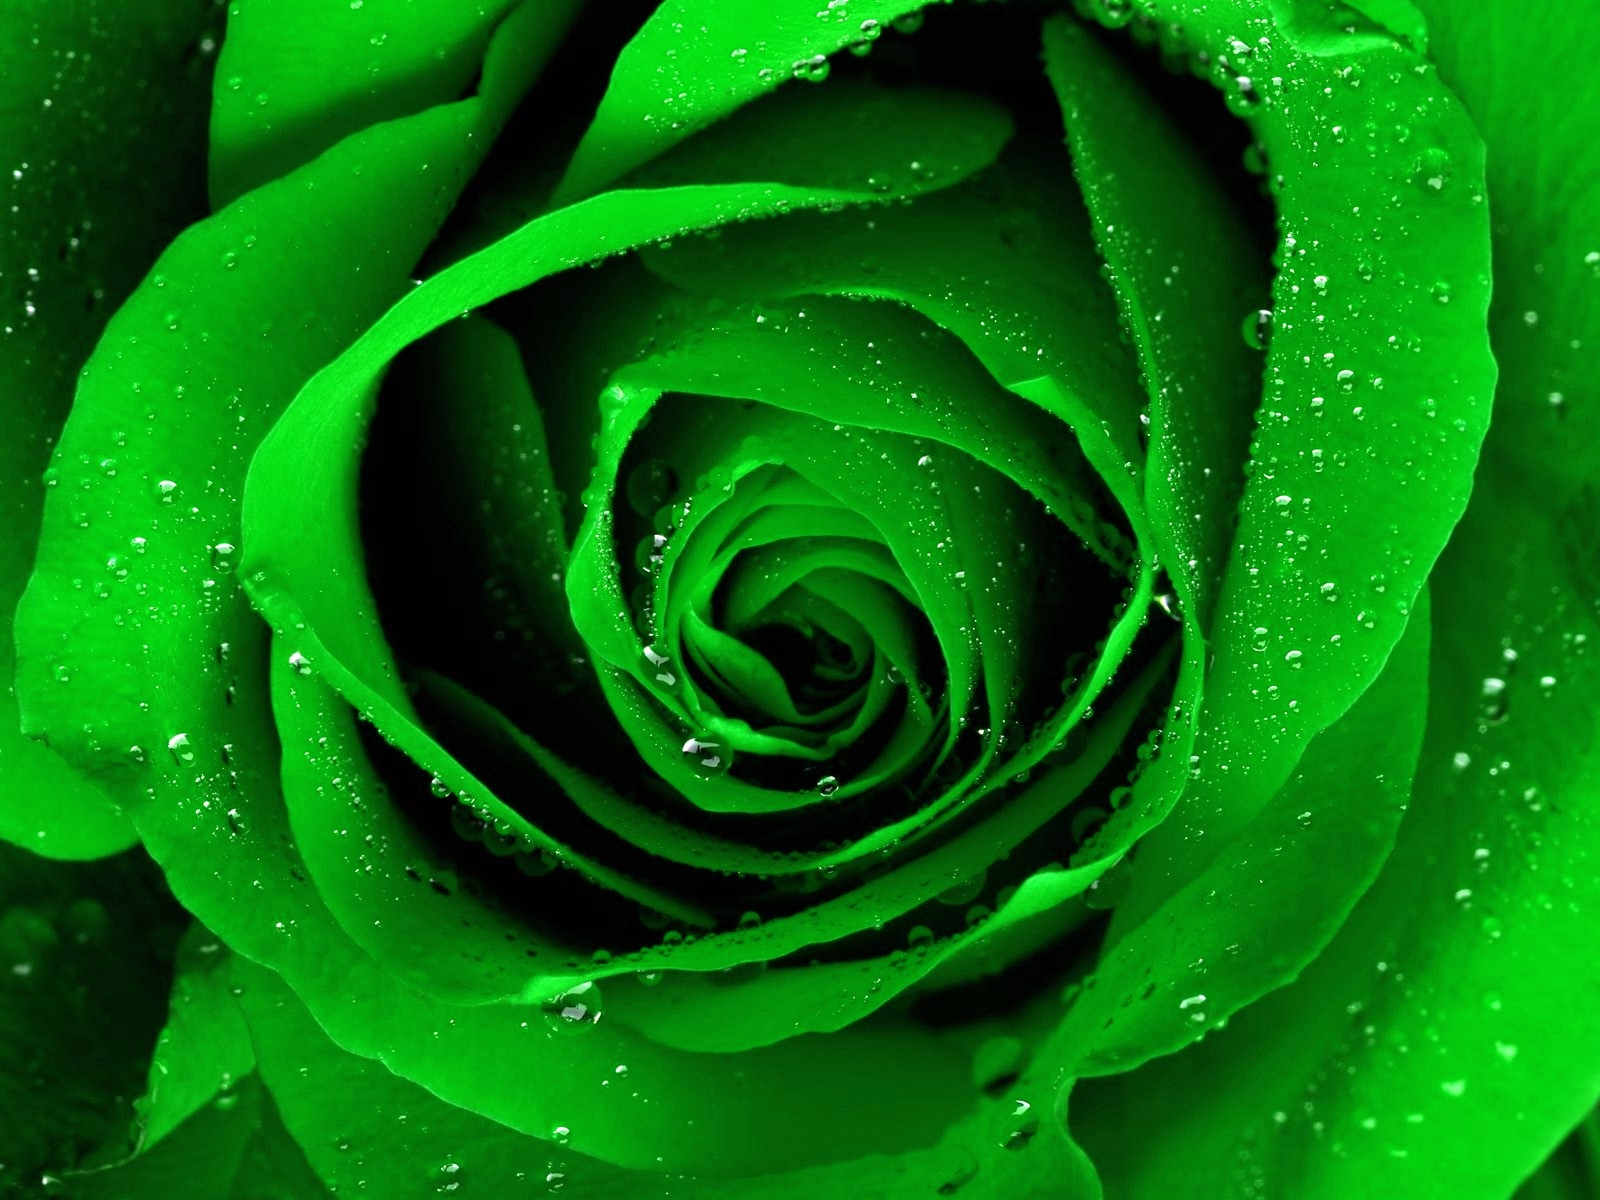 green rose black background - photo #20